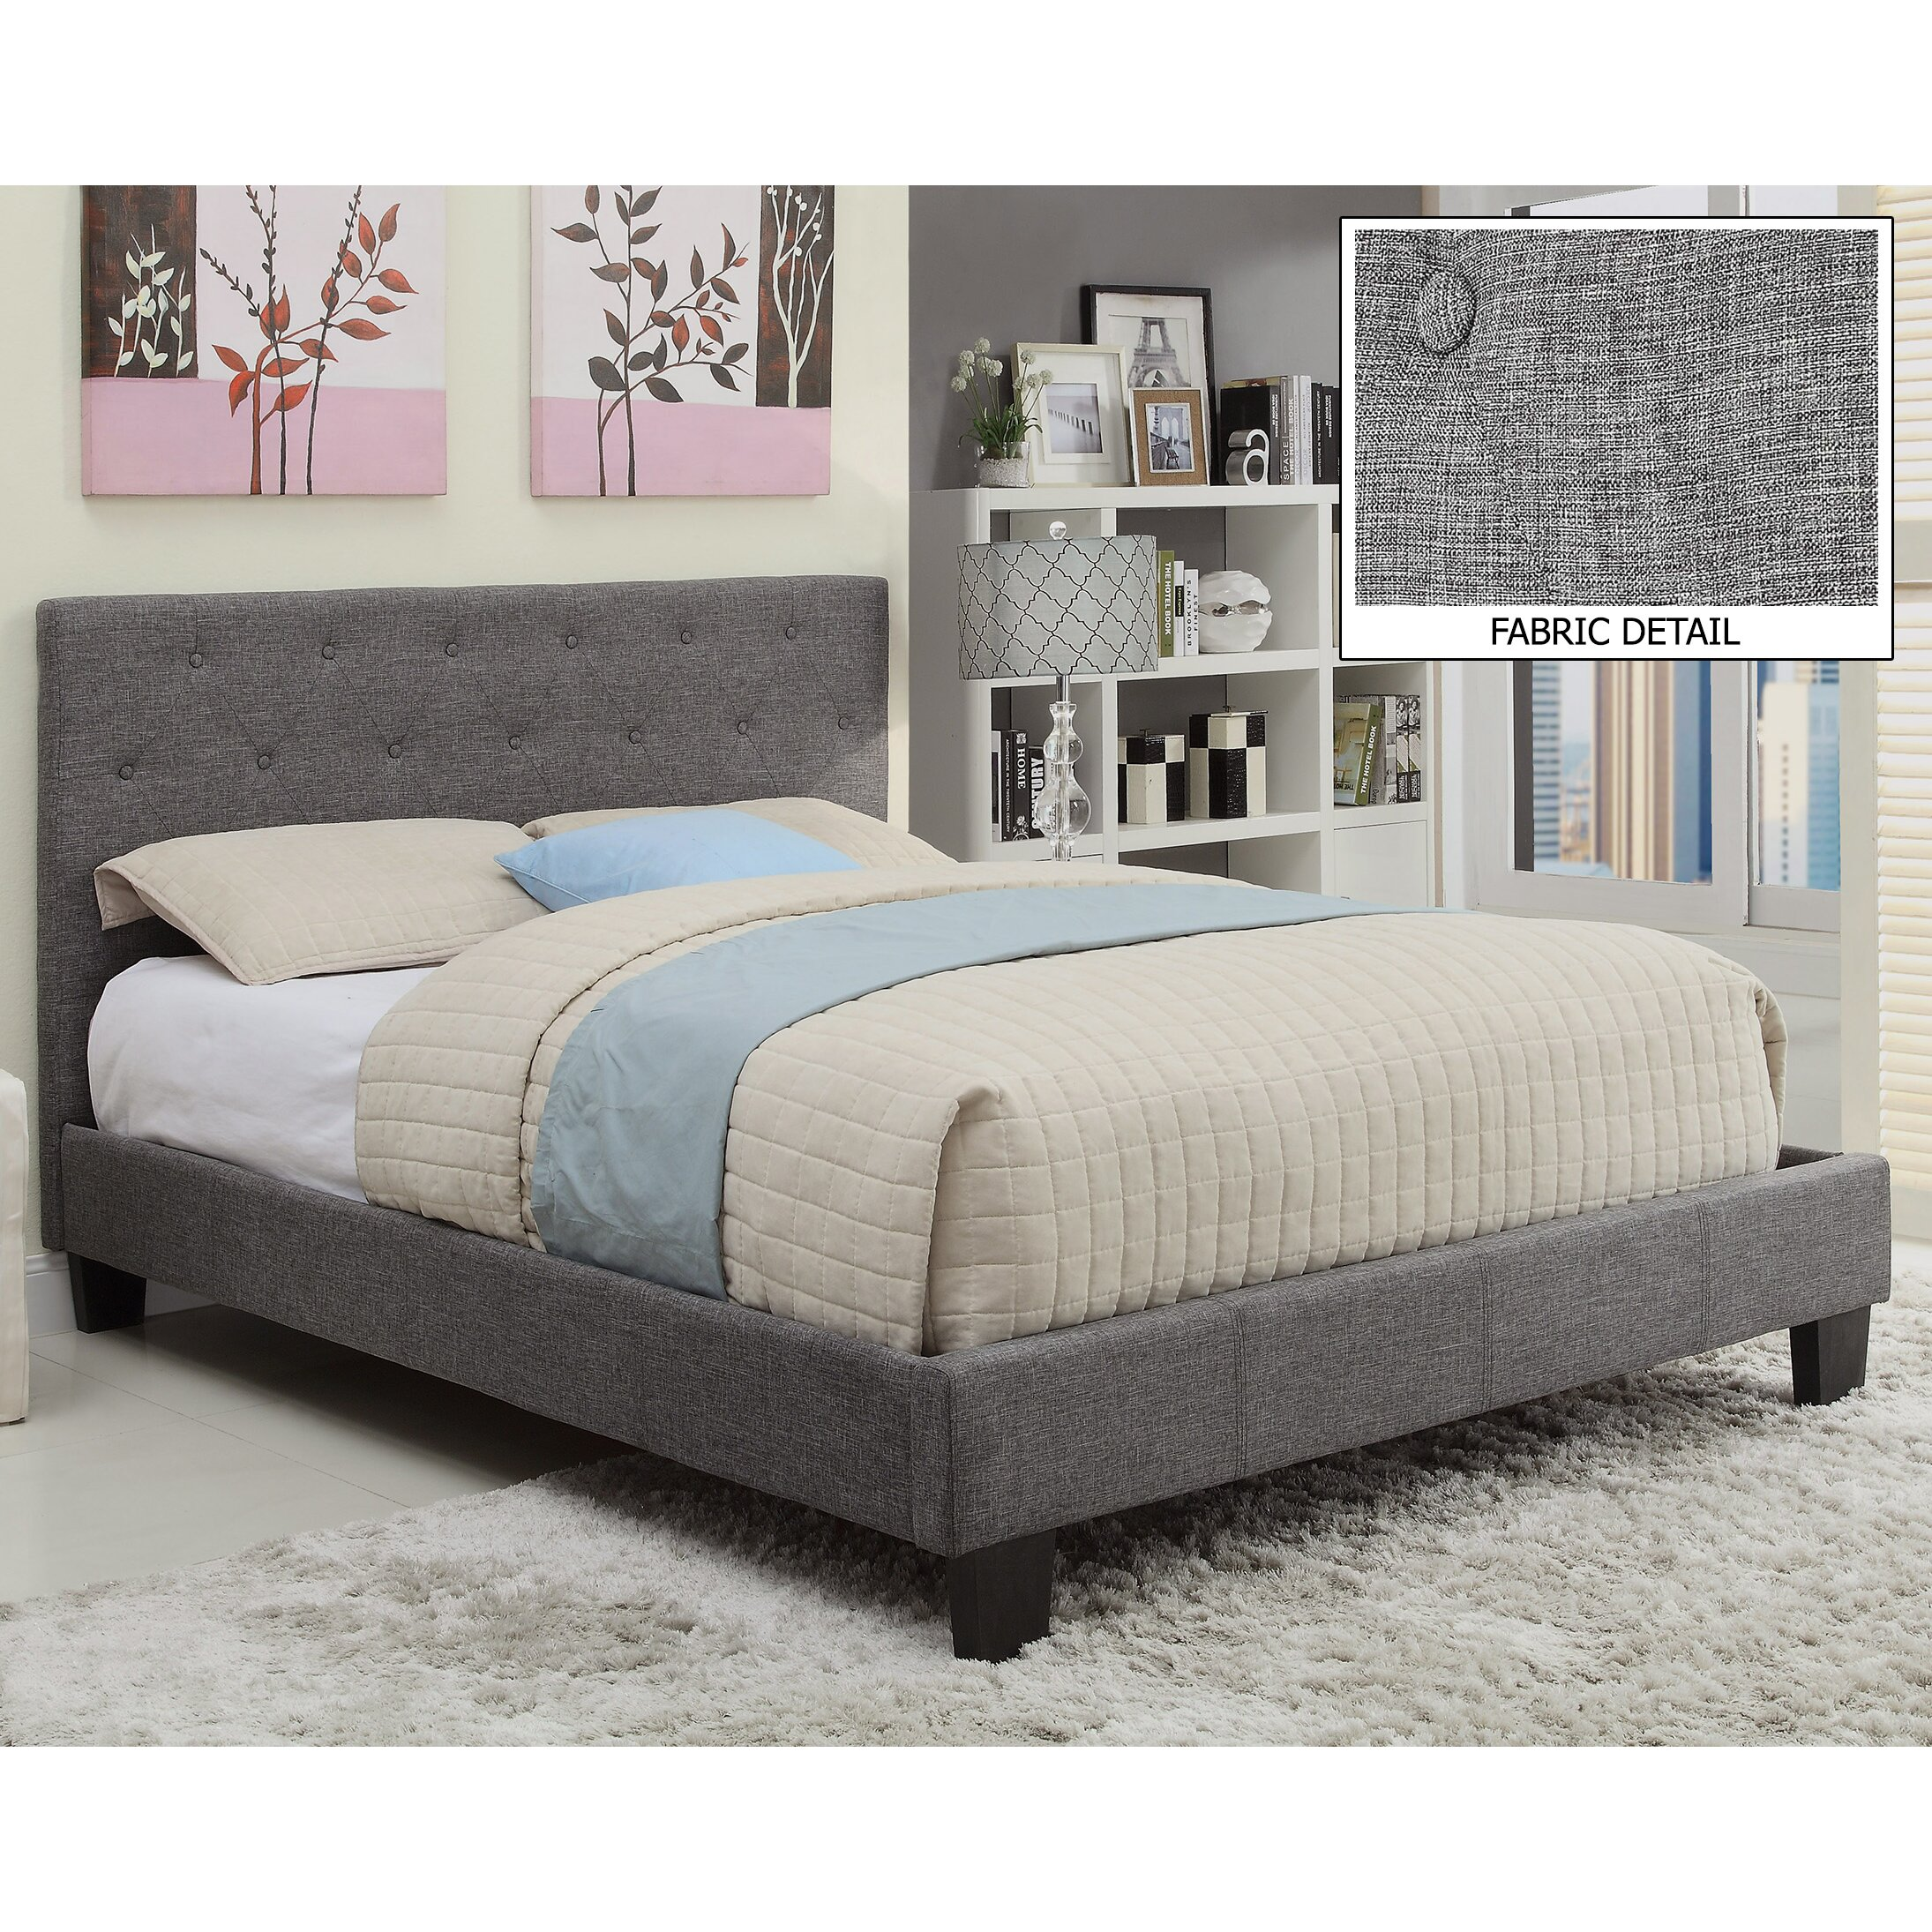 Worldwide Homefurnishings Upholstered Platform Bed Reviews Wayfair